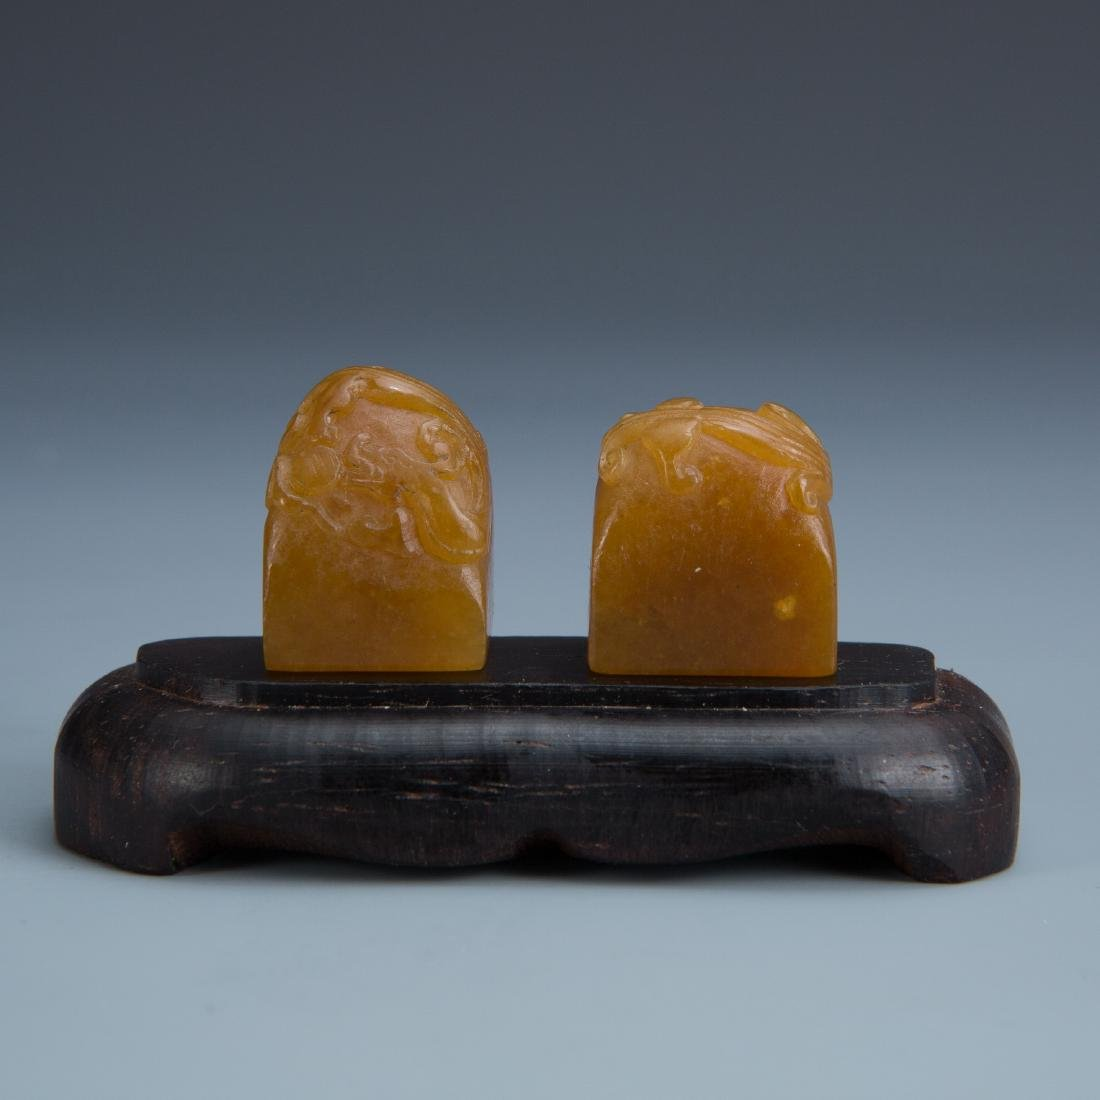 Pair of Carved Soapstone Serpent Stones on Wood Tray